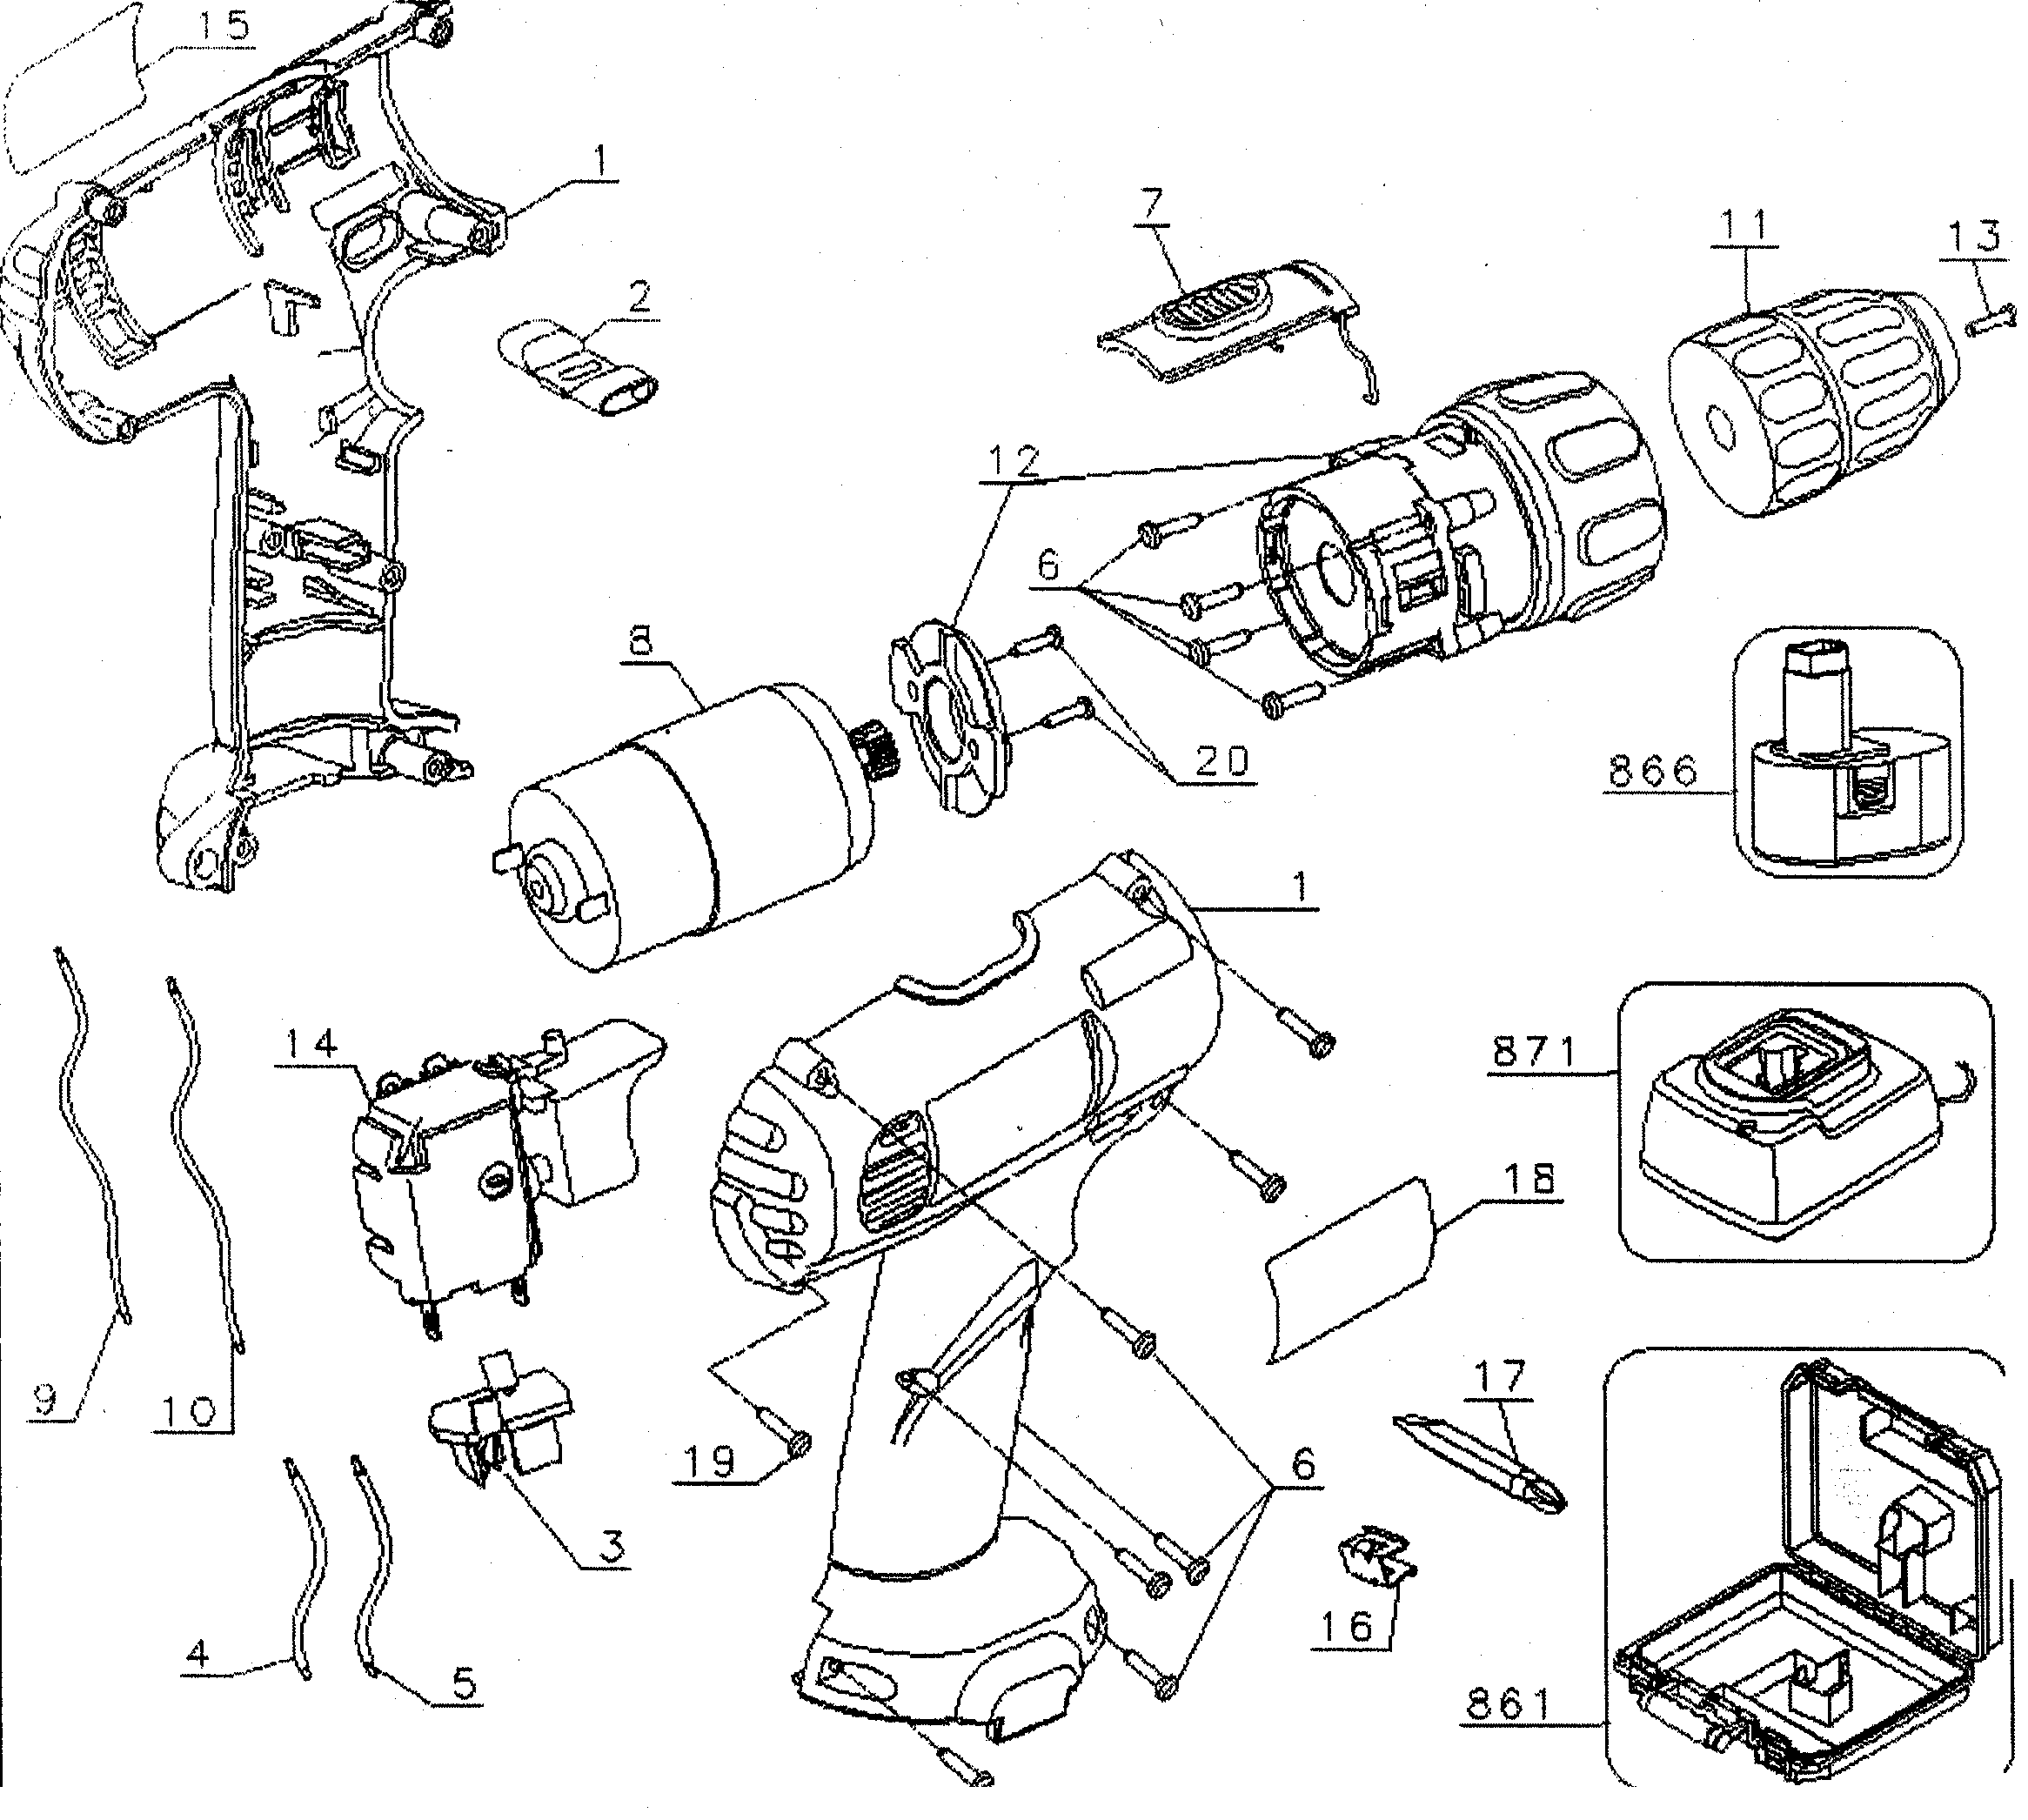 dewalt dcd771 xe repair manual